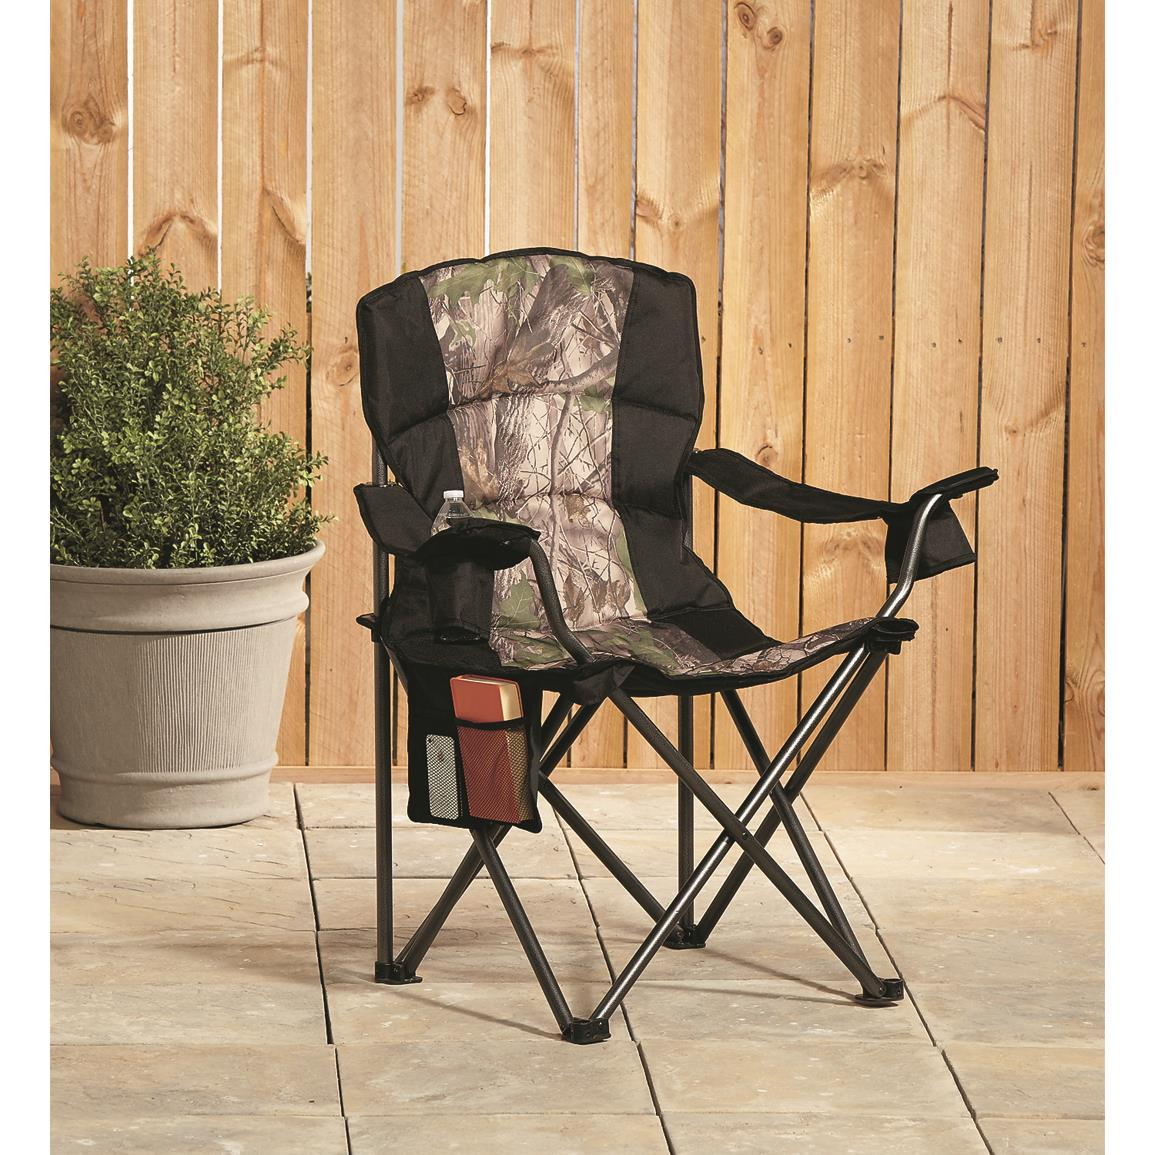 King Chairs Guide Gear Camo Oversized King Chair 500 Lb Capacity